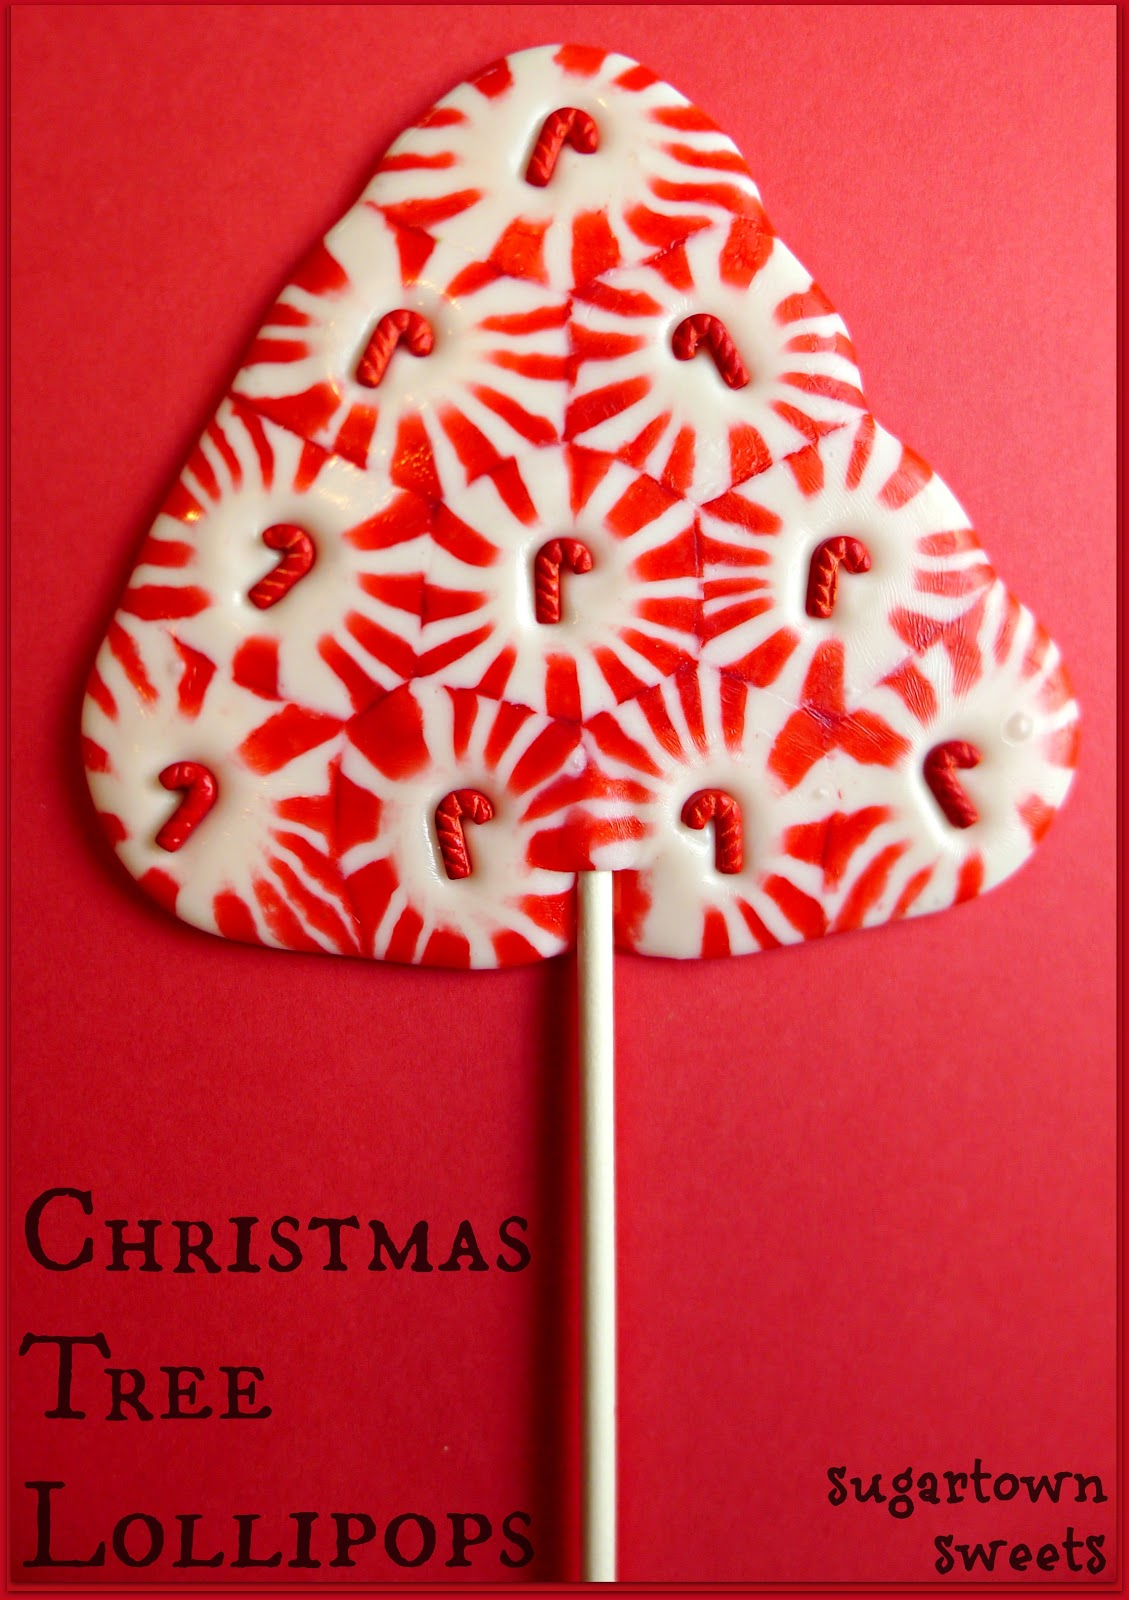 Sugartown Sweets Christmas Tree Lollipops